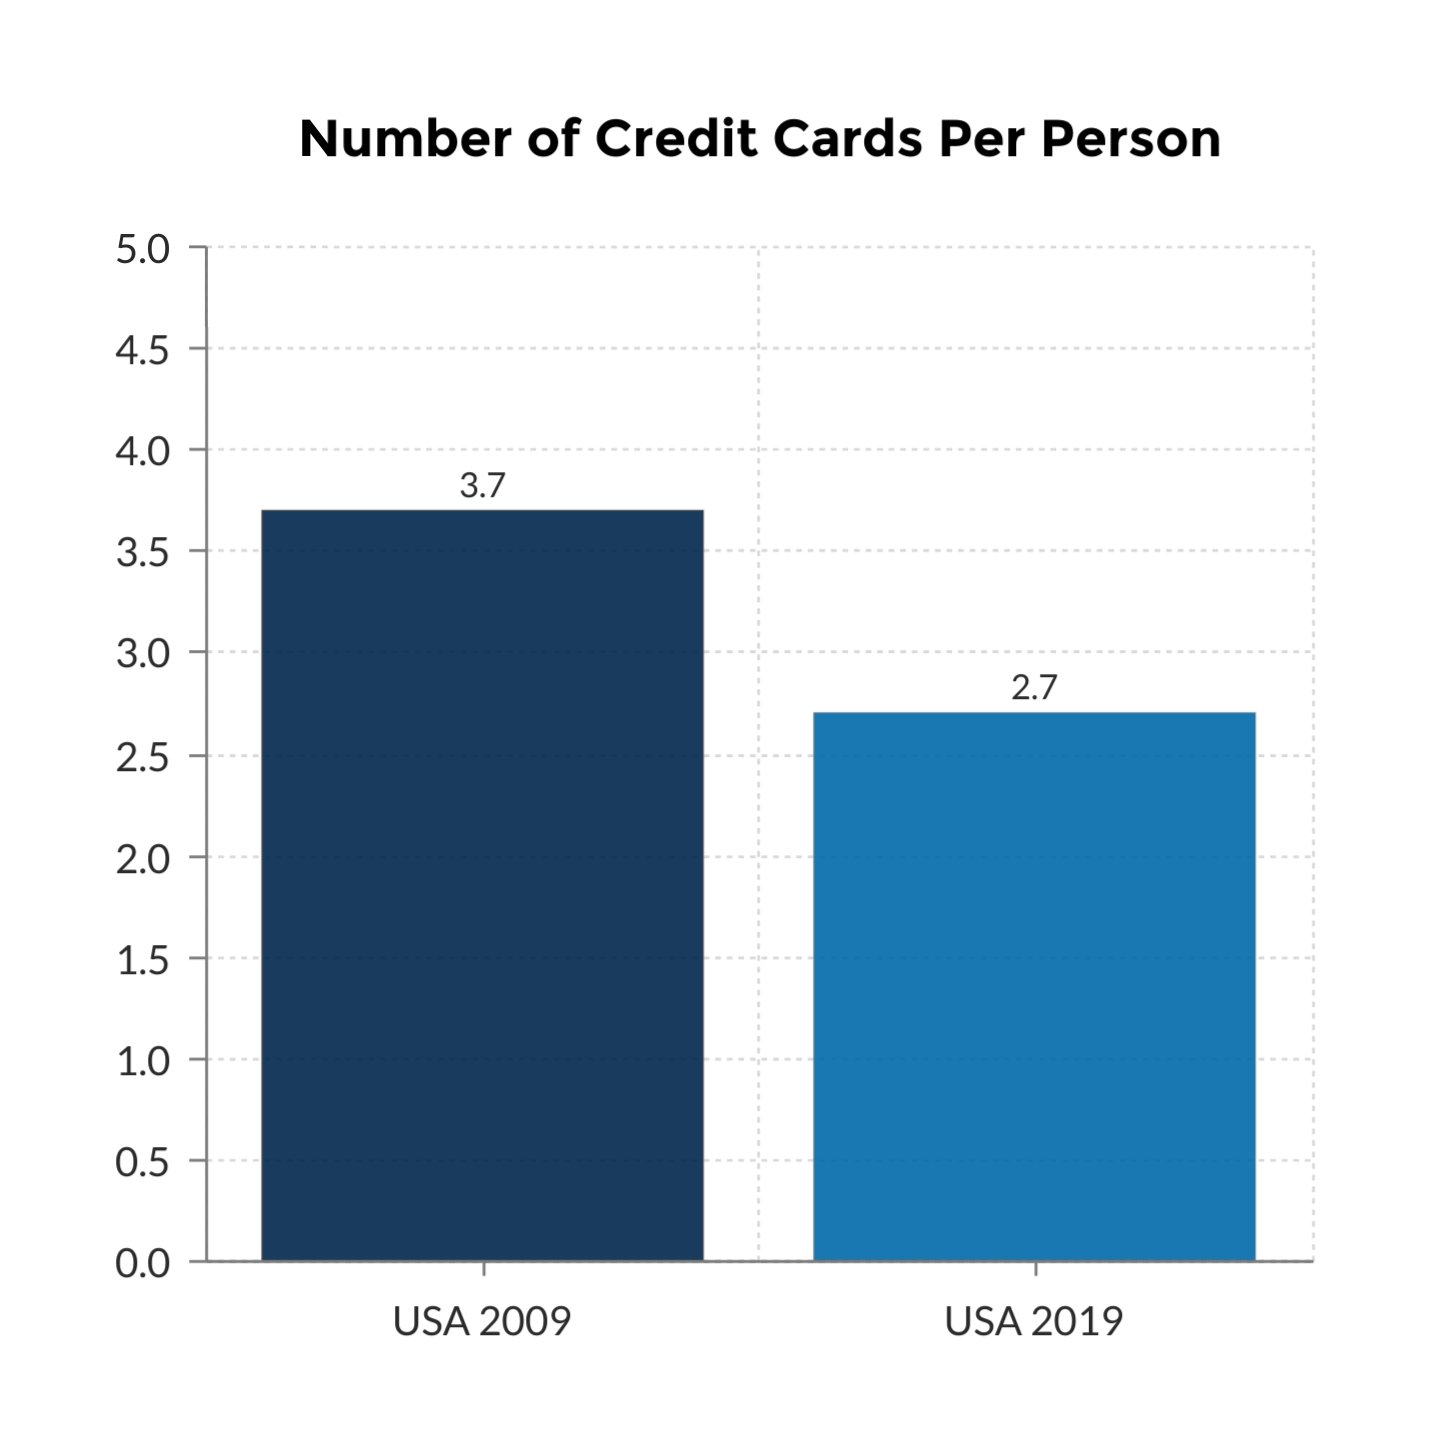 number of credit cards per person in USA